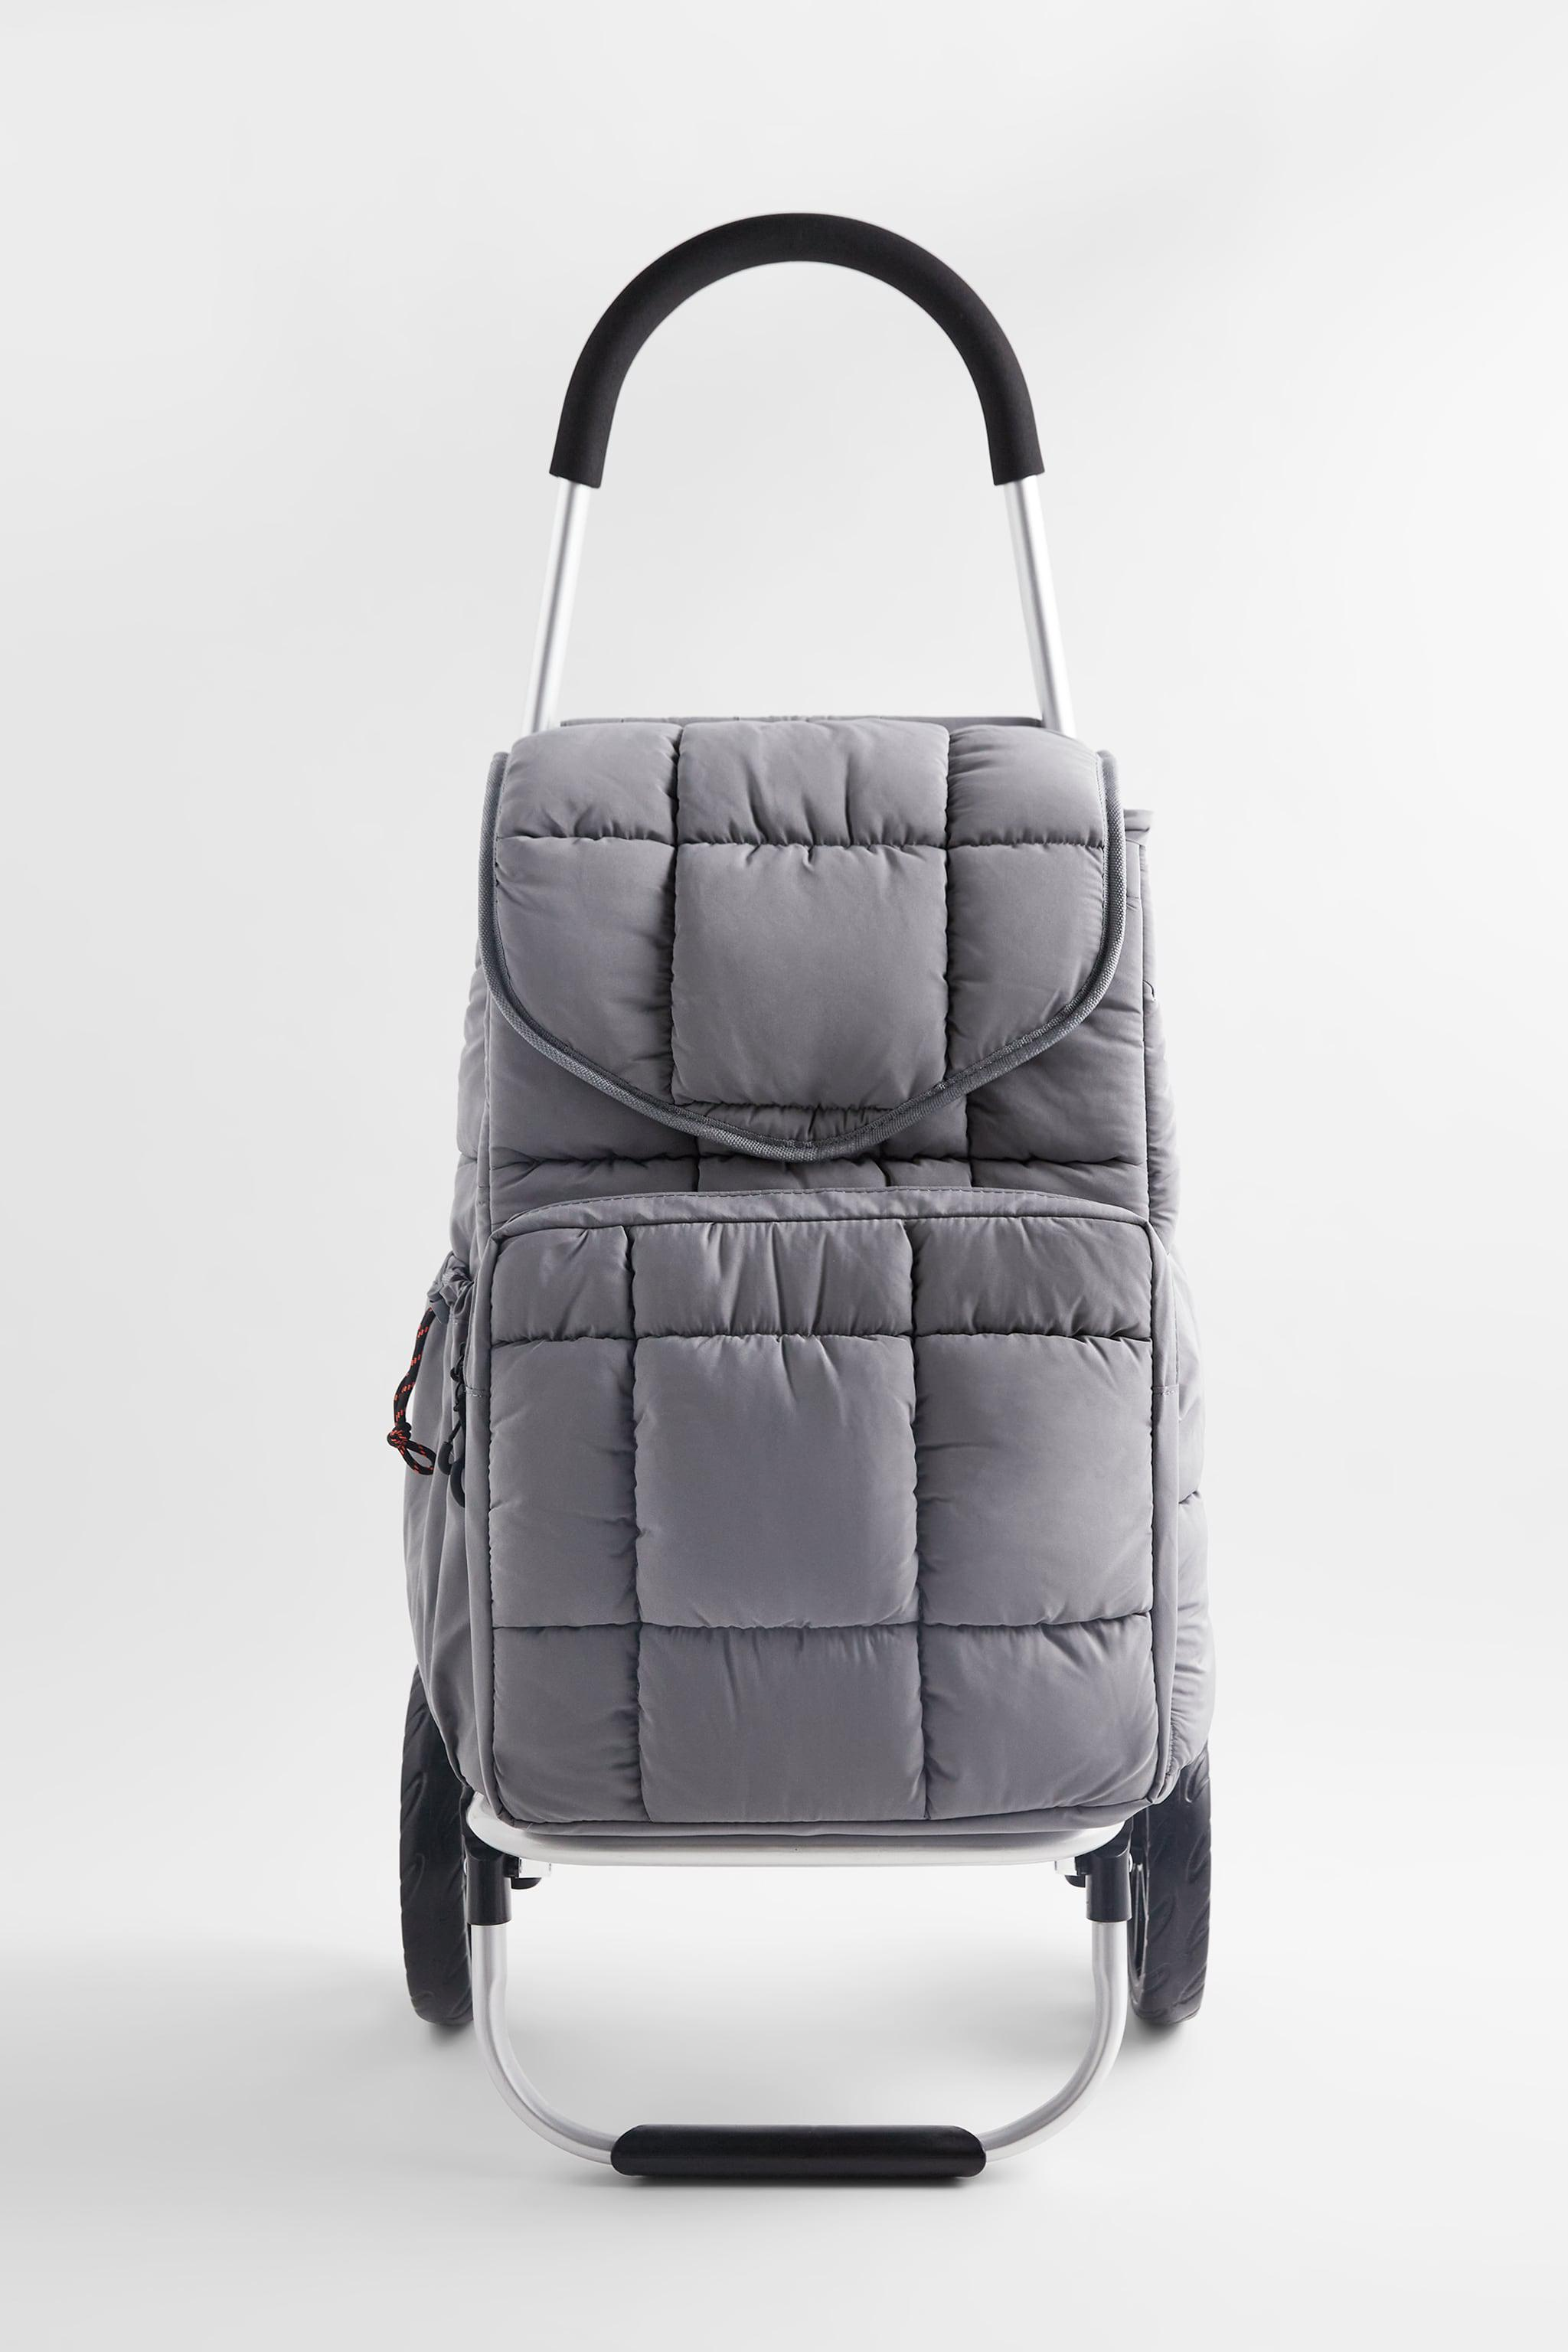 QUILTED SHOPPING CART